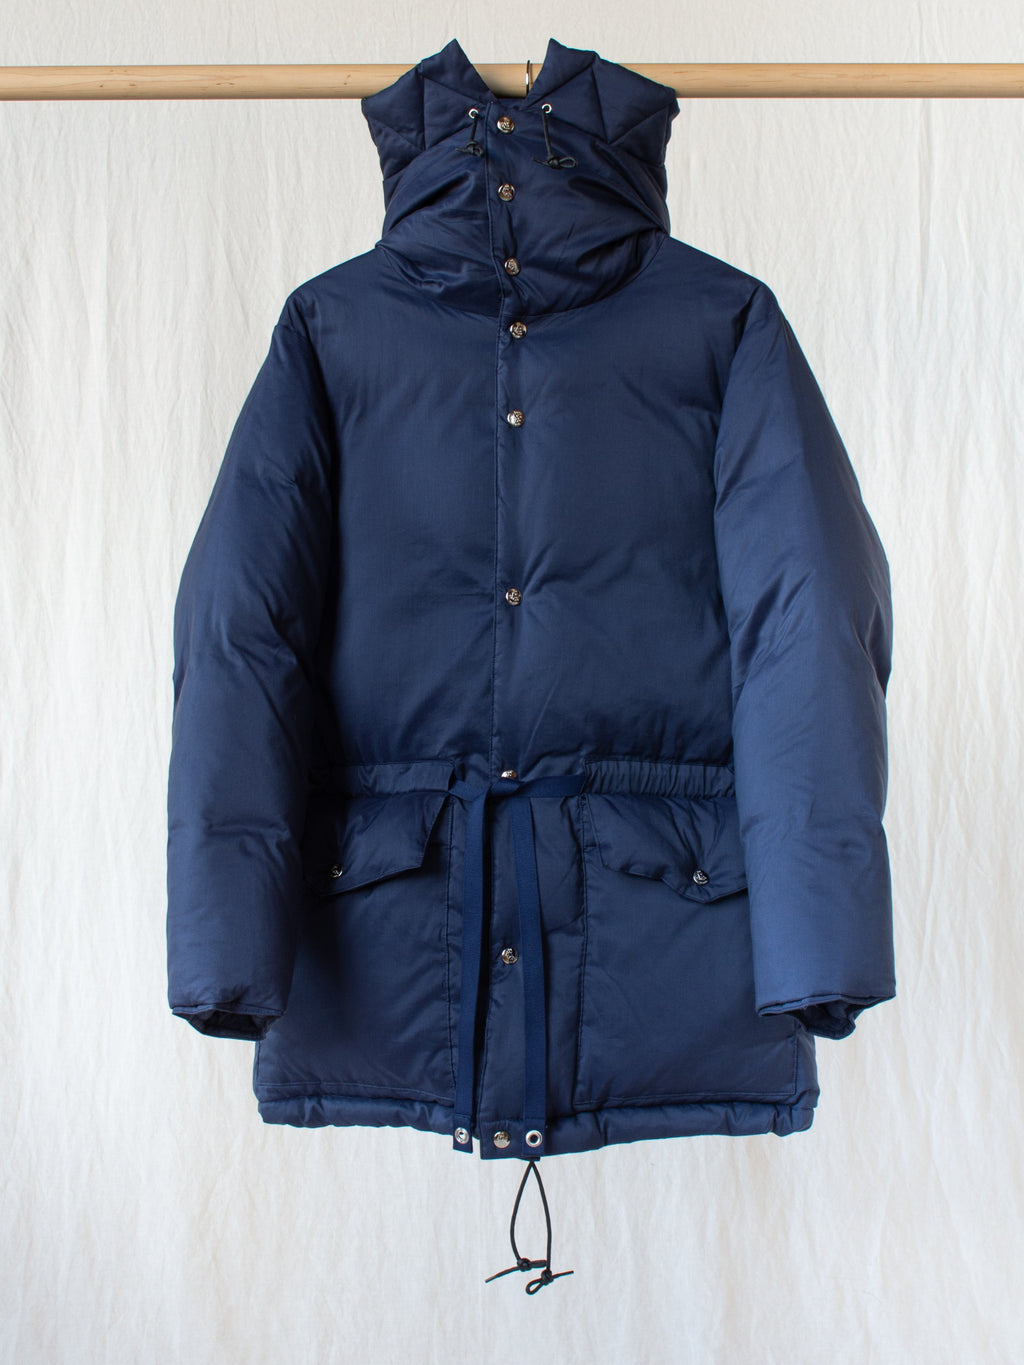 Namu Shop - Kaptain Sunshine Expedition Down Jacket - Deep Sea